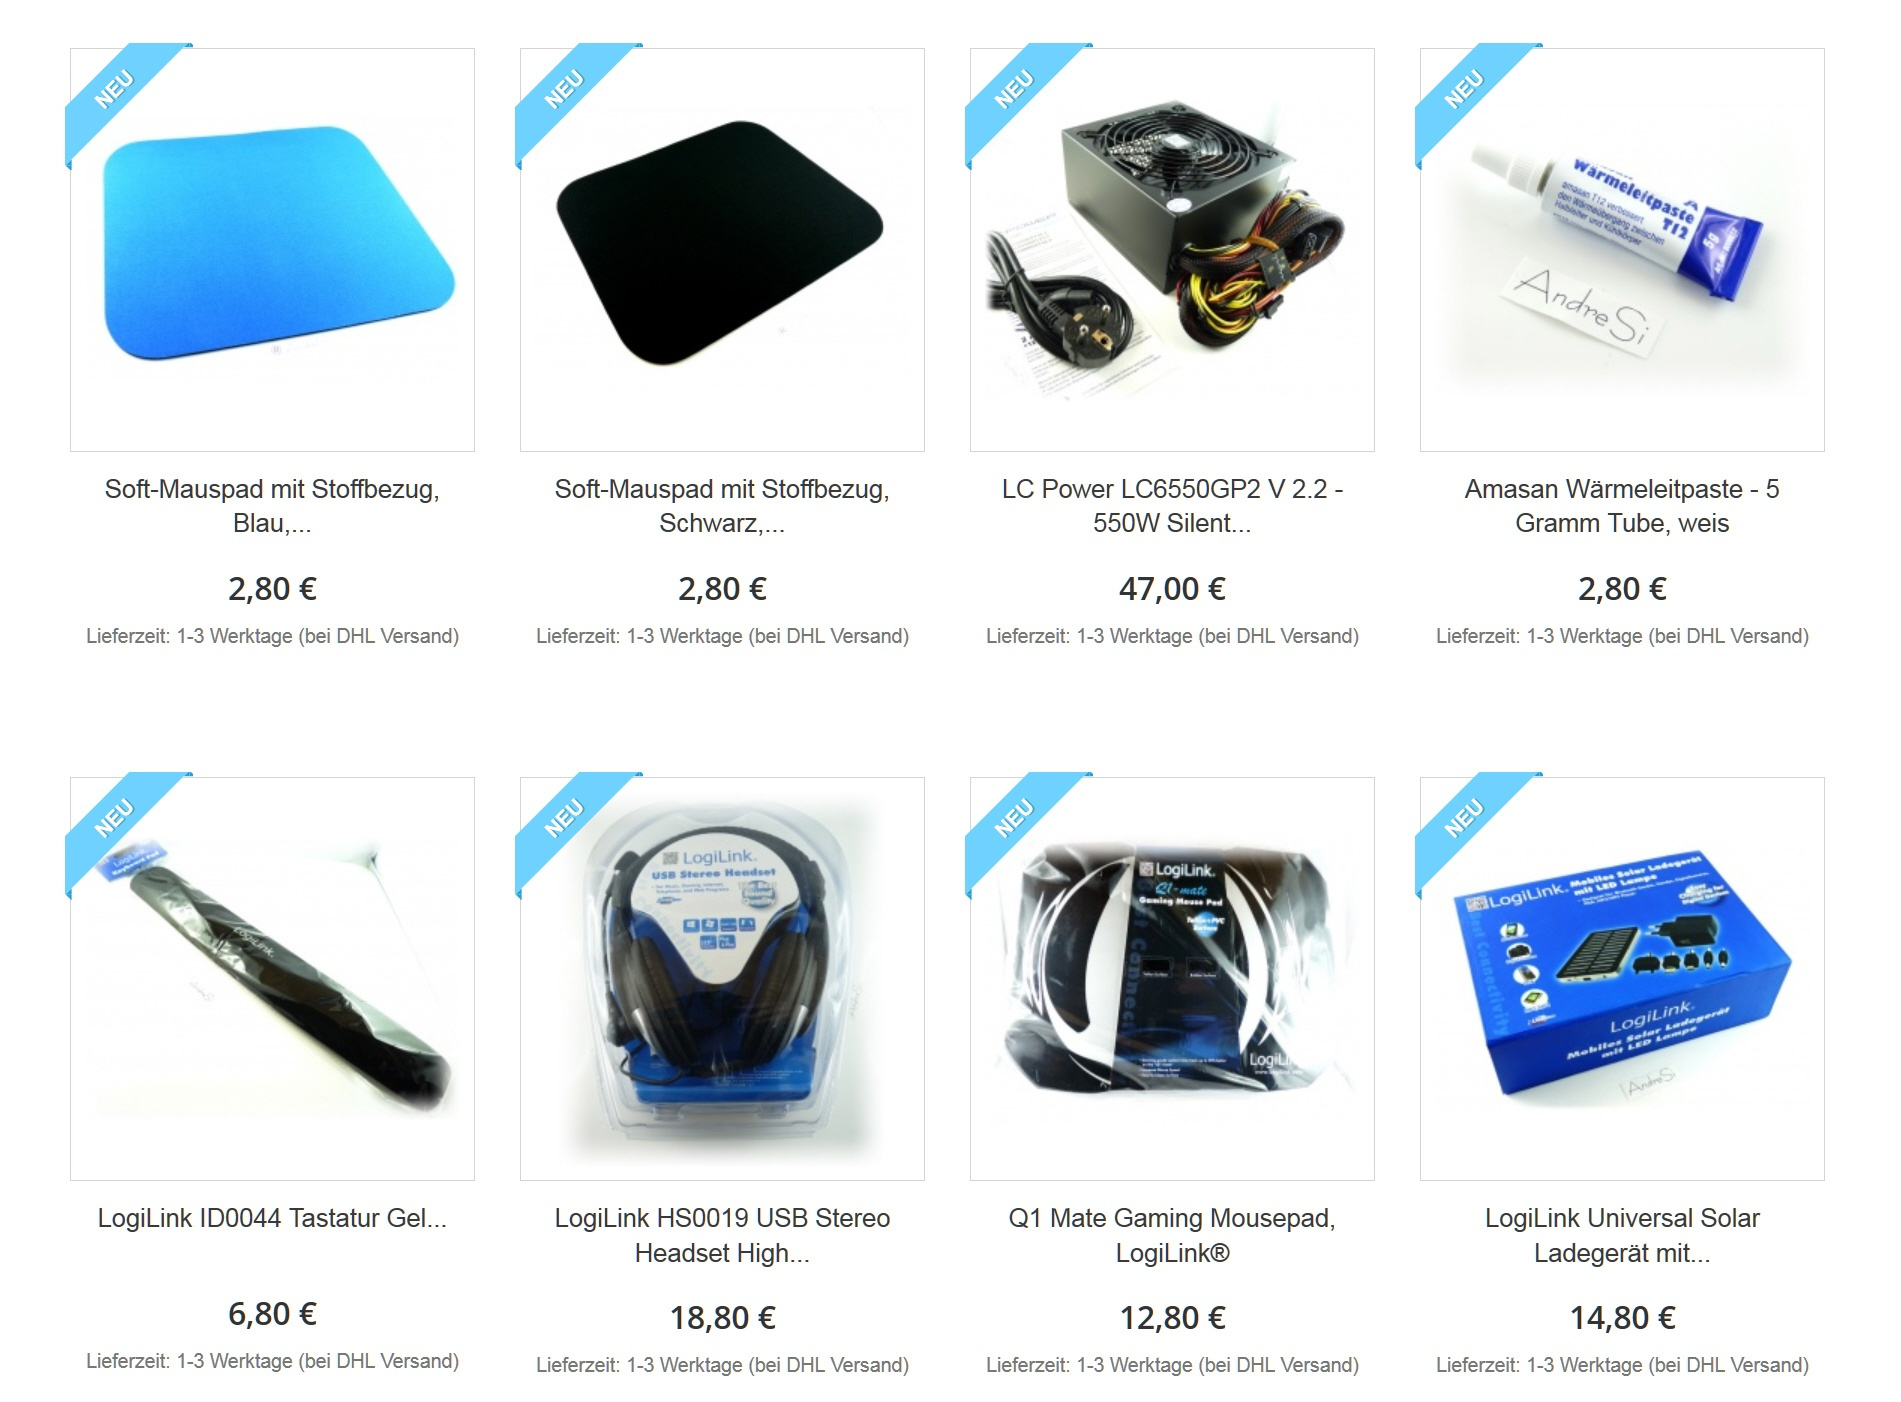 PC Technology & Accessories